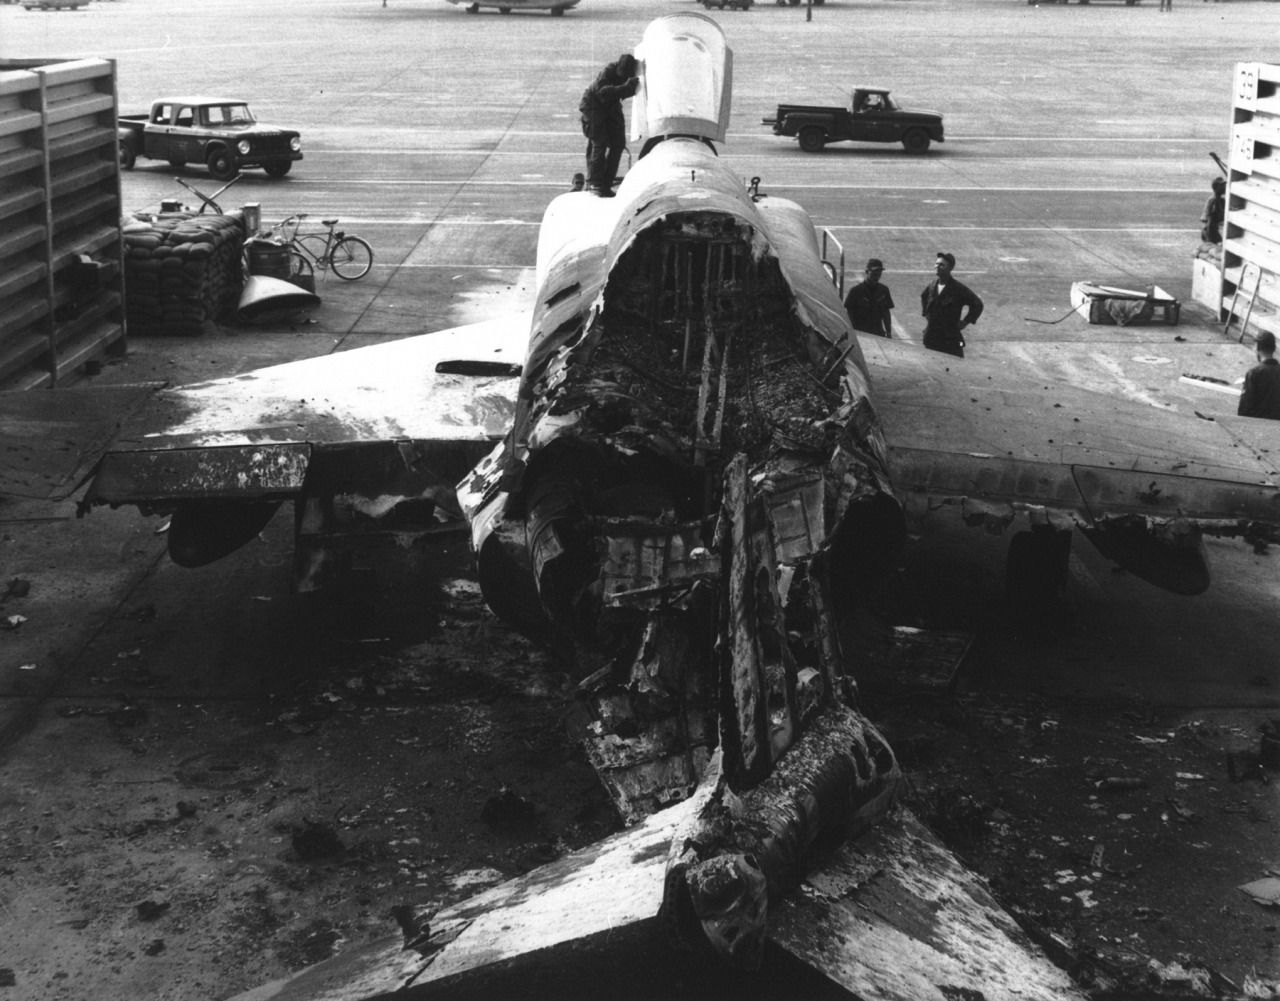 USAF RF4C Phantom wrecked during a 1968 rocket attack on